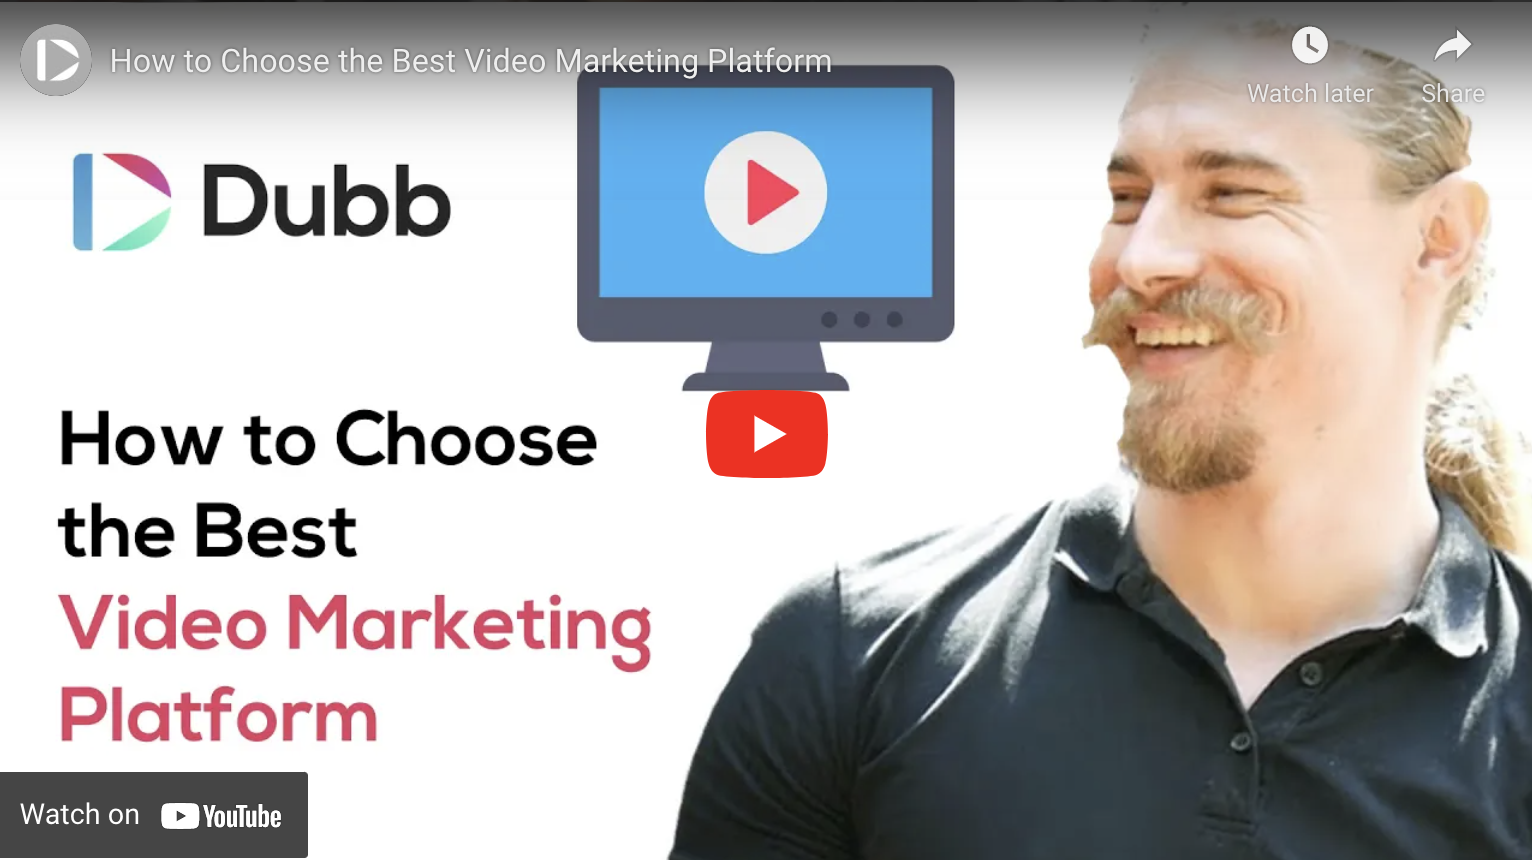 How to Choose the Best Video Marketing Platform